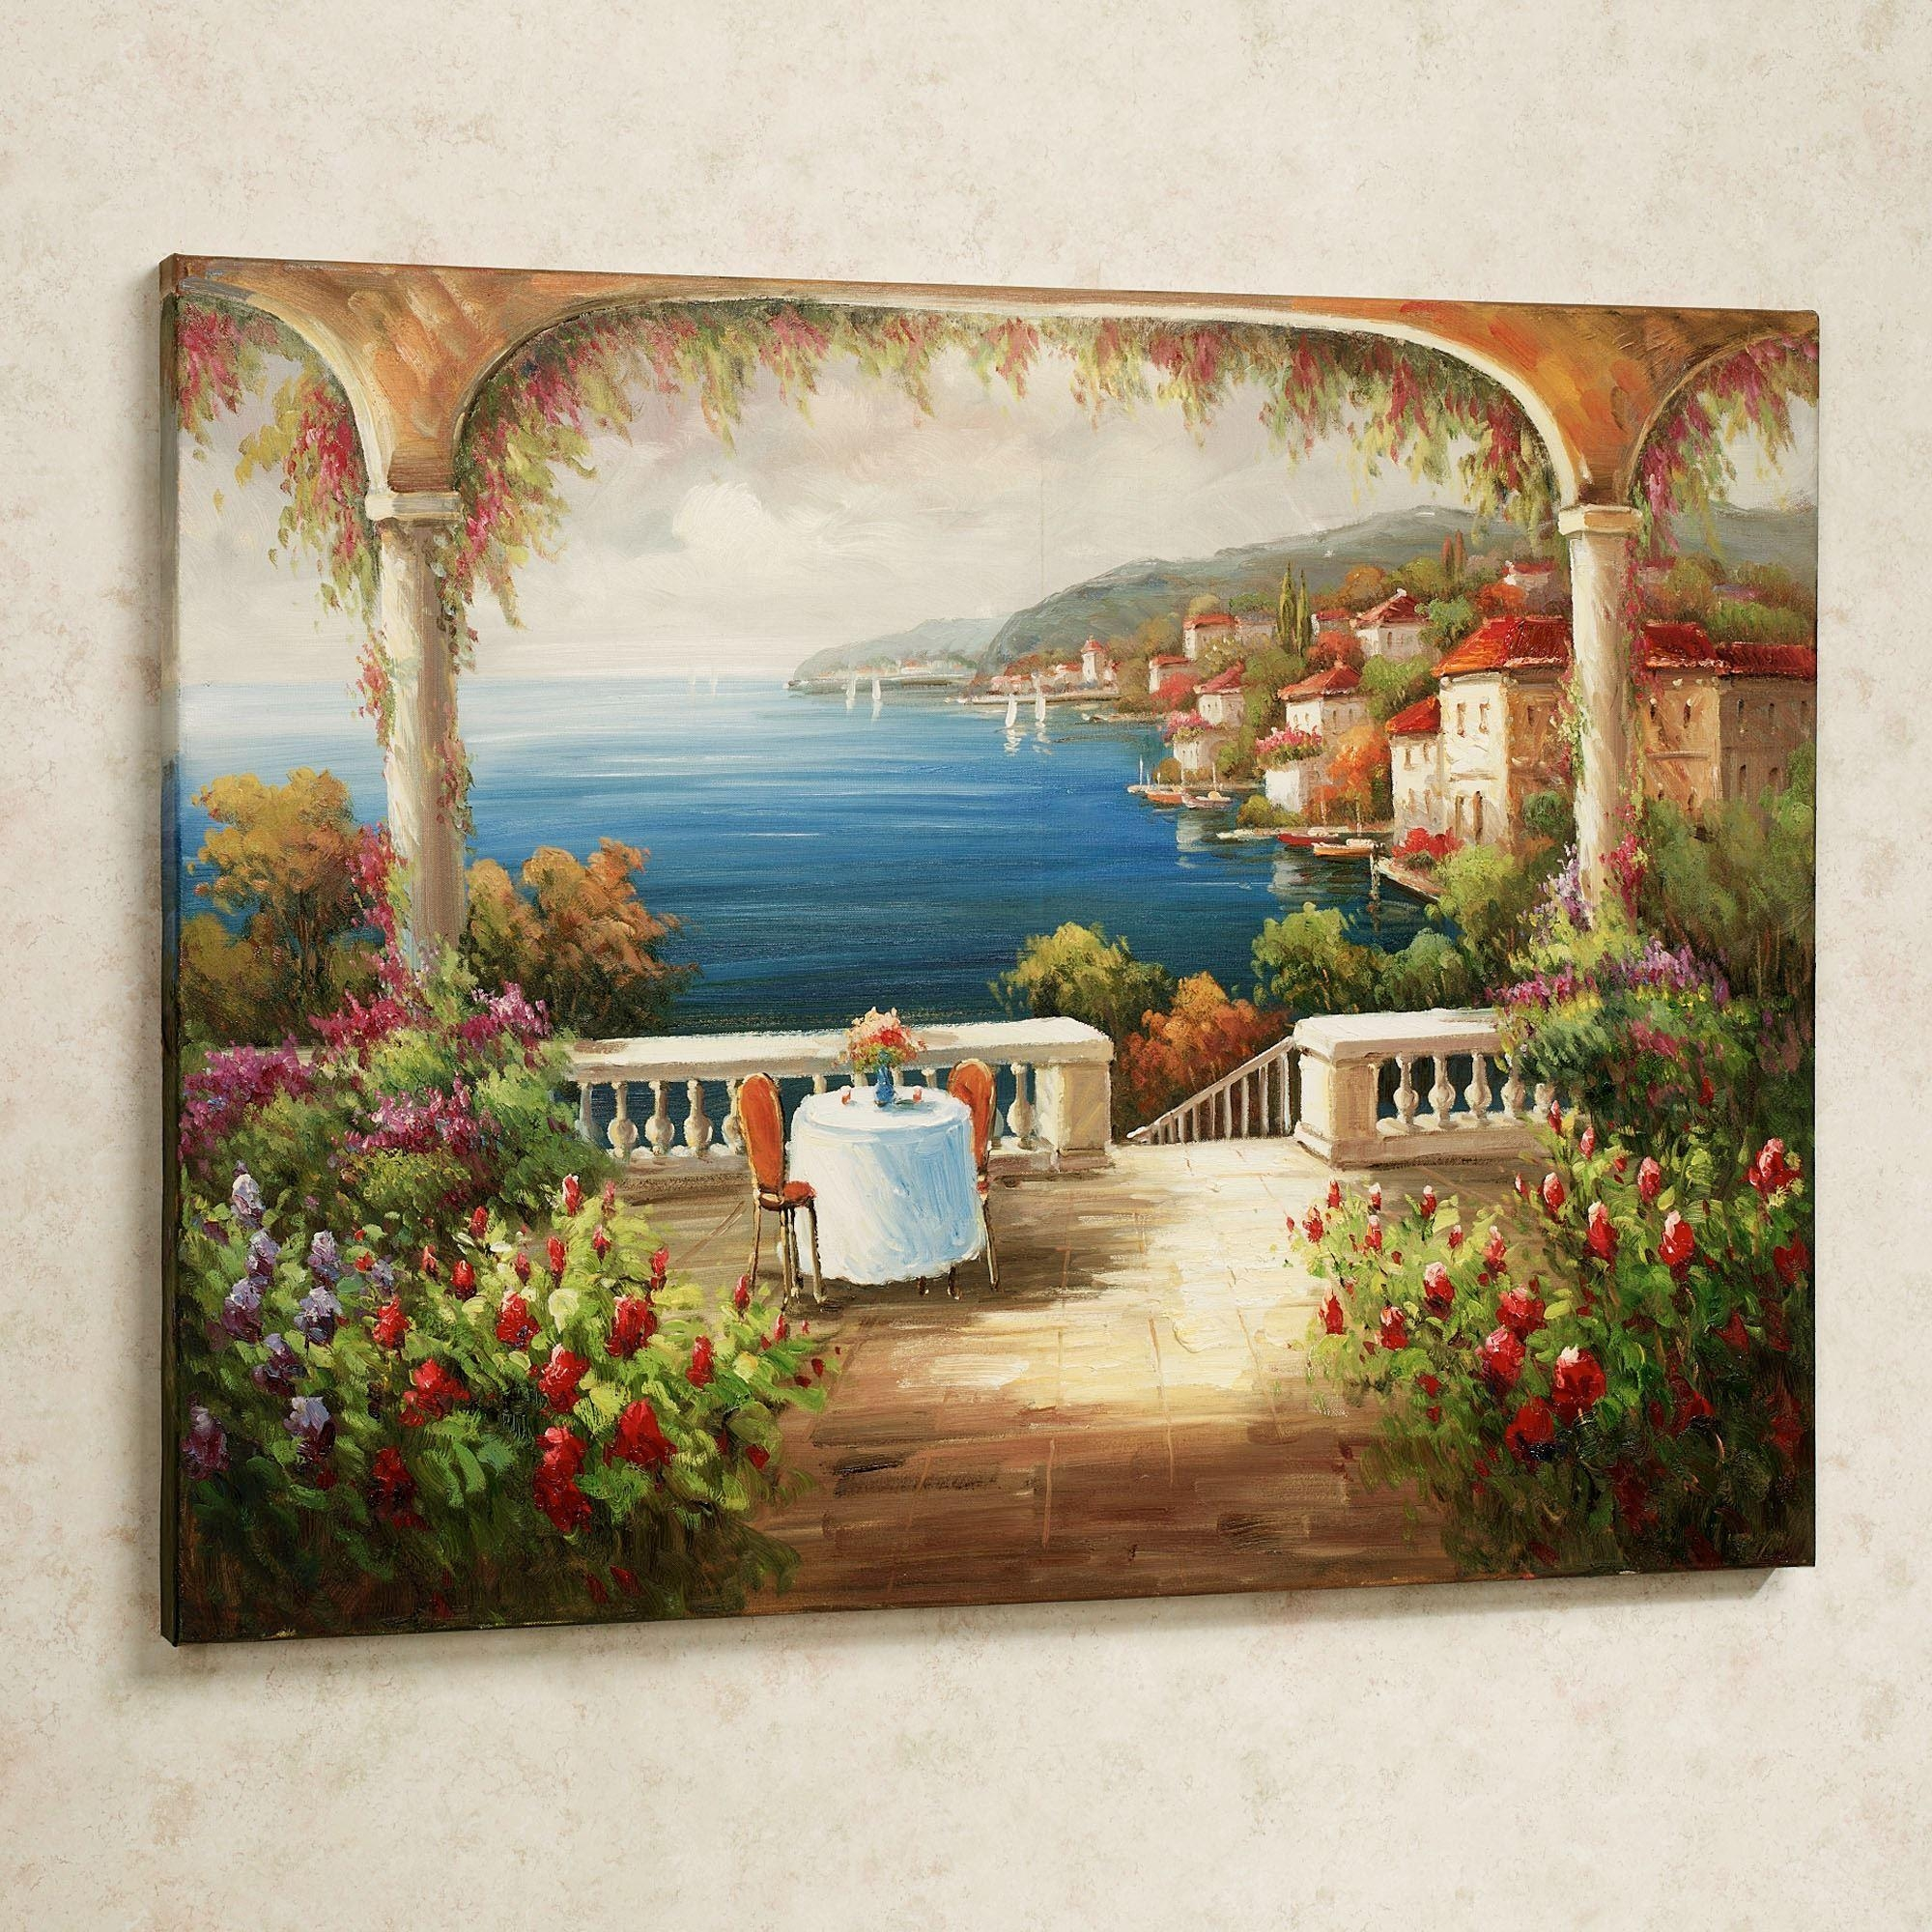 Kitchen : Kitchen Wall Art Art On Wall Wall Piece Art Prints For Intended For Italian Themed Kitchen Wall Art (View 20 of 20)